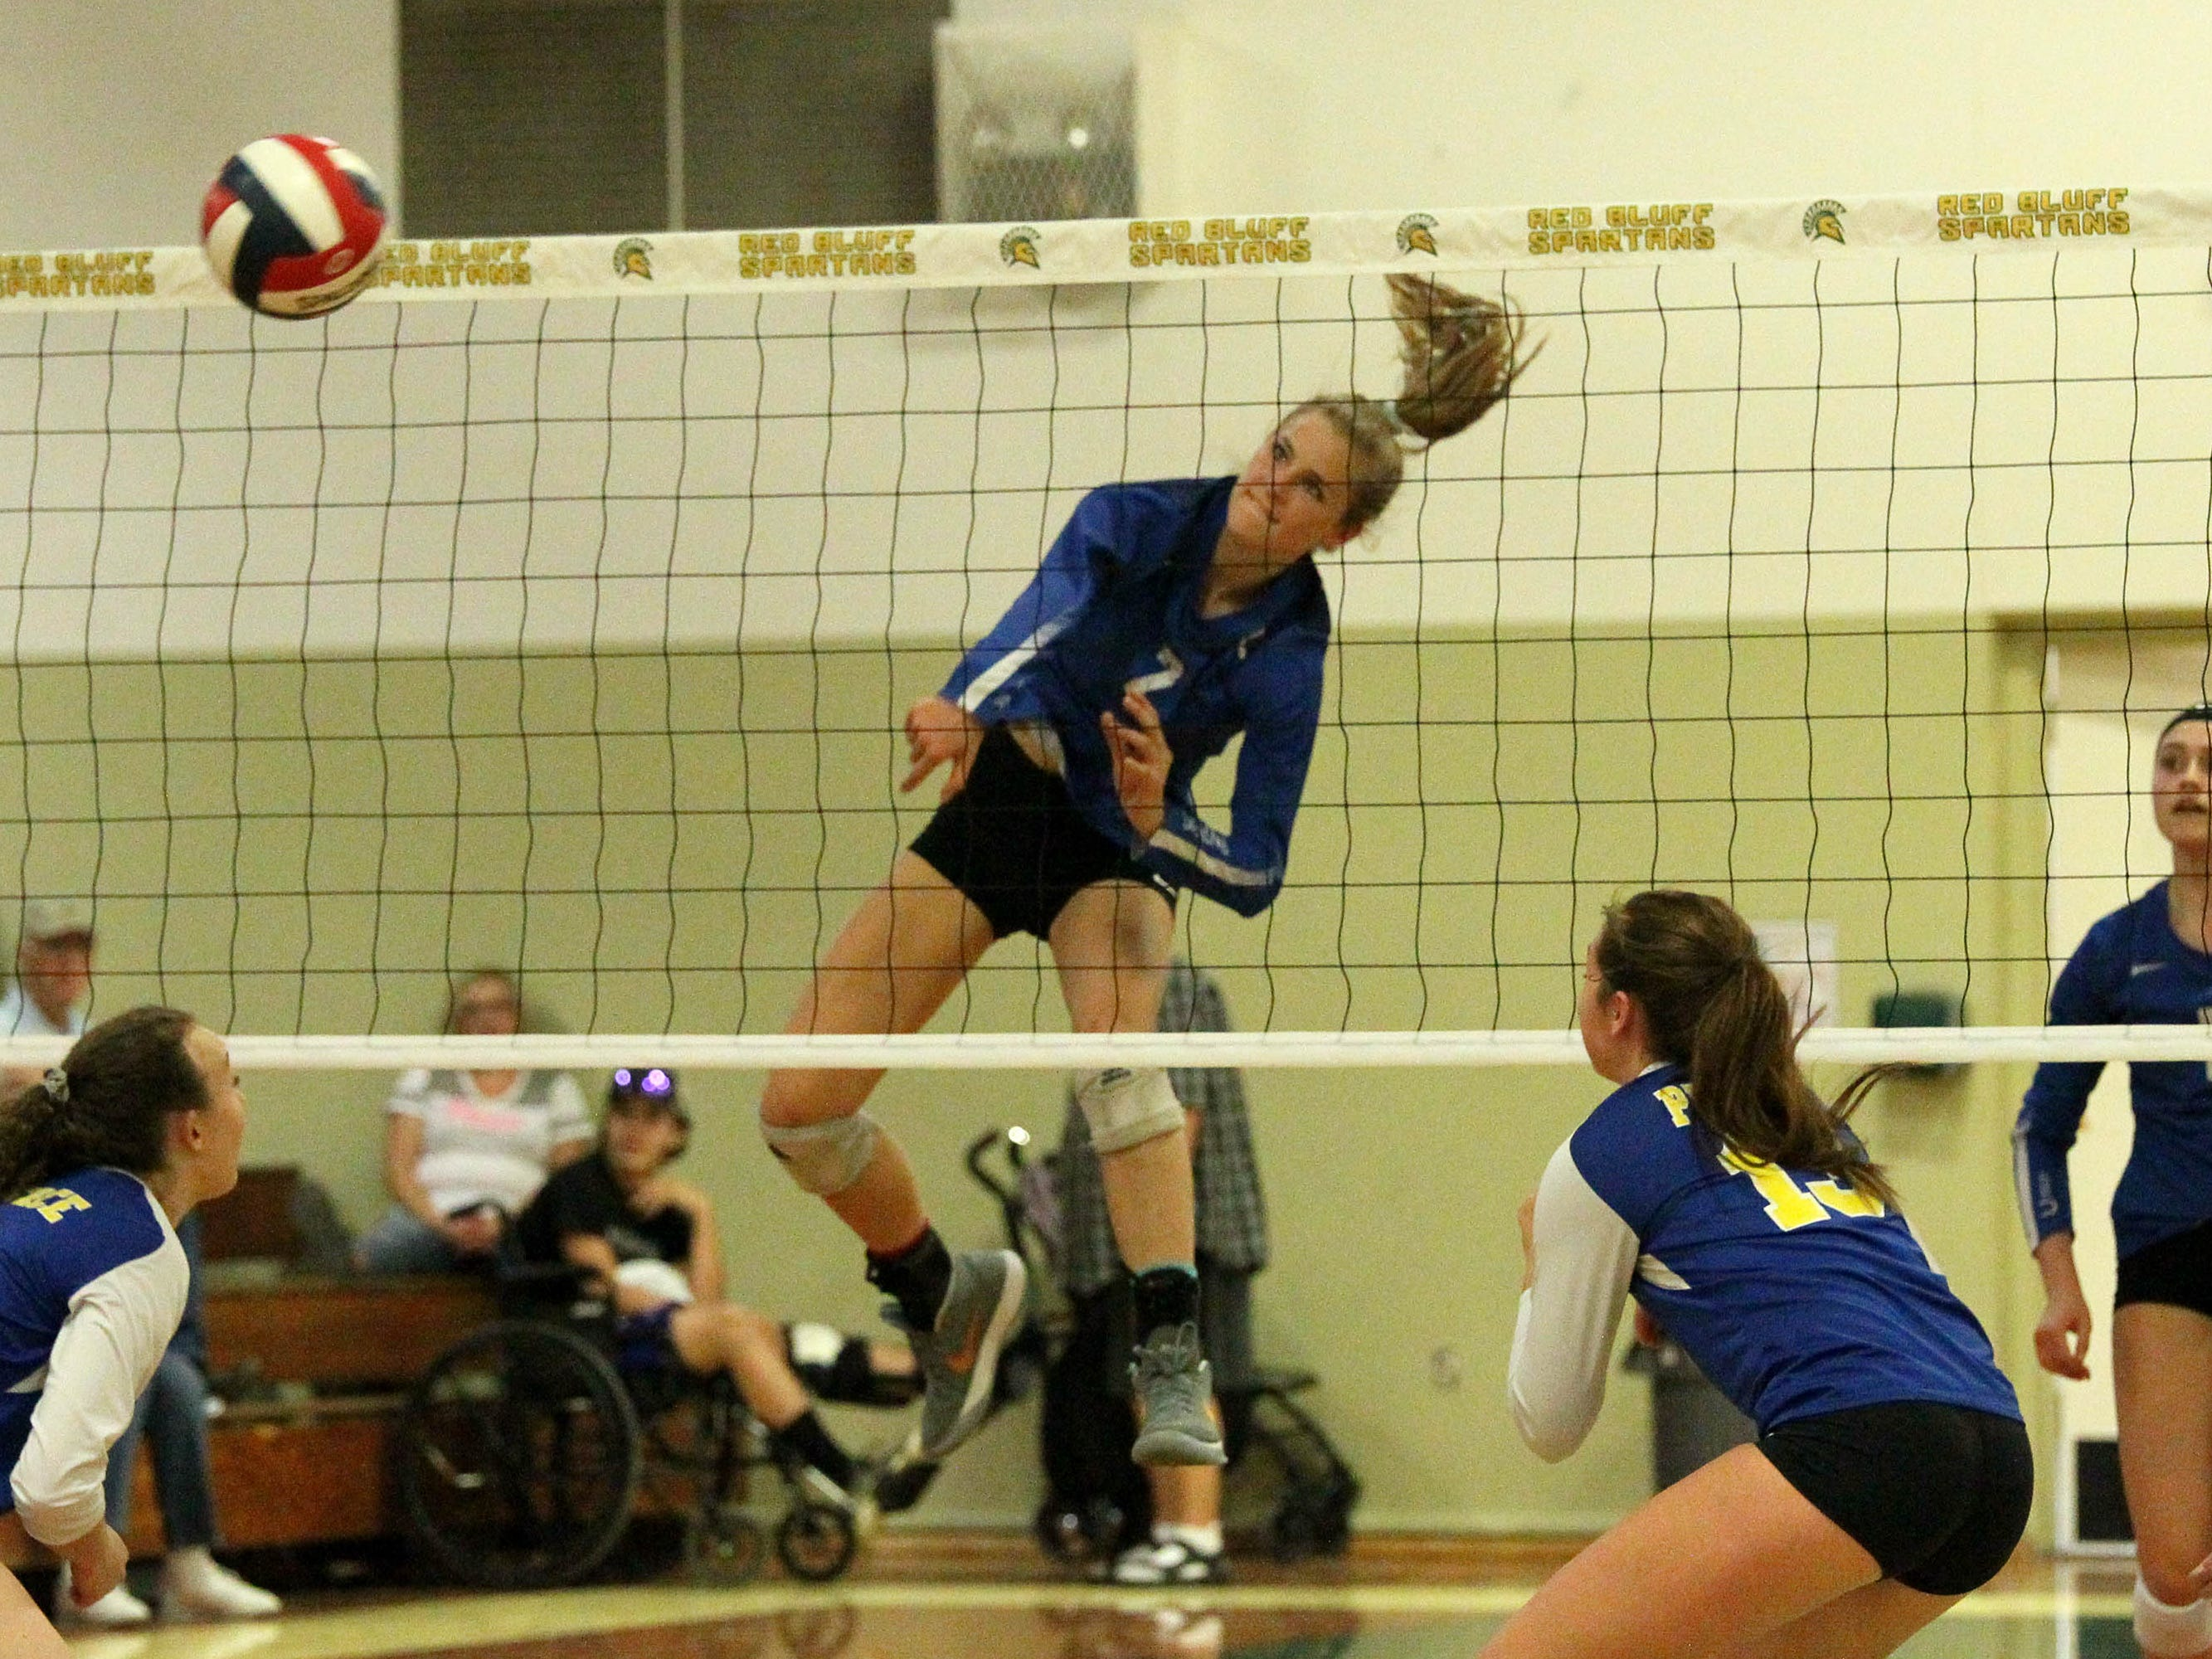 Madison Kremer (2) spikes the ball in the Division IV Northern Section volleyball championship on Saturday, Nov. 3. Pierce won the match in three sets over U-Prep, 25-23, 25-21, 25-22.